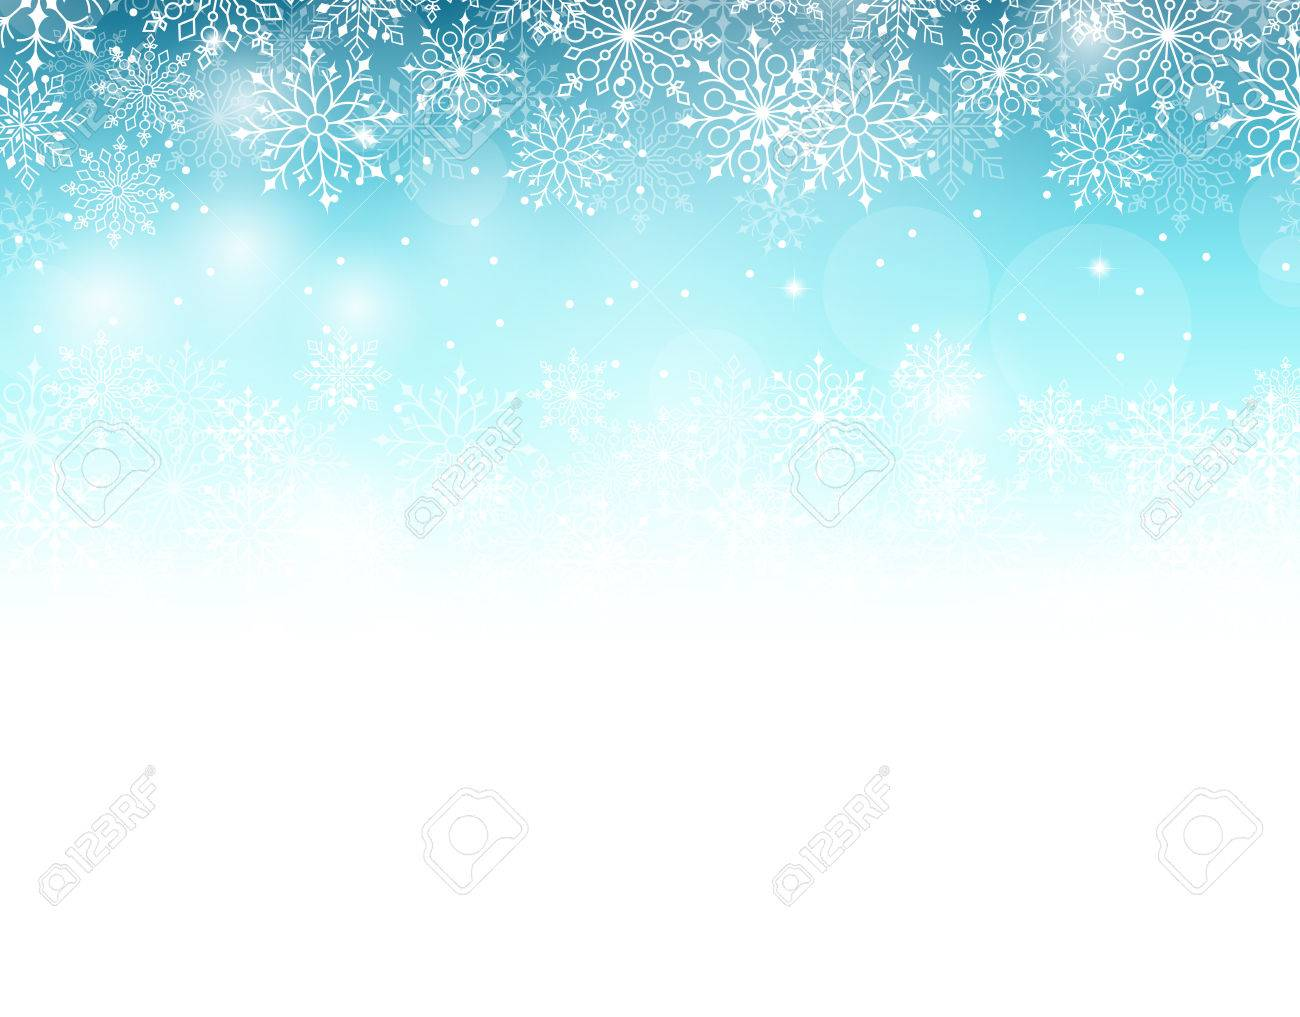 Winter Background with Various Cold Blue Snowflakes Pattern. Vector Illustration - 47108727